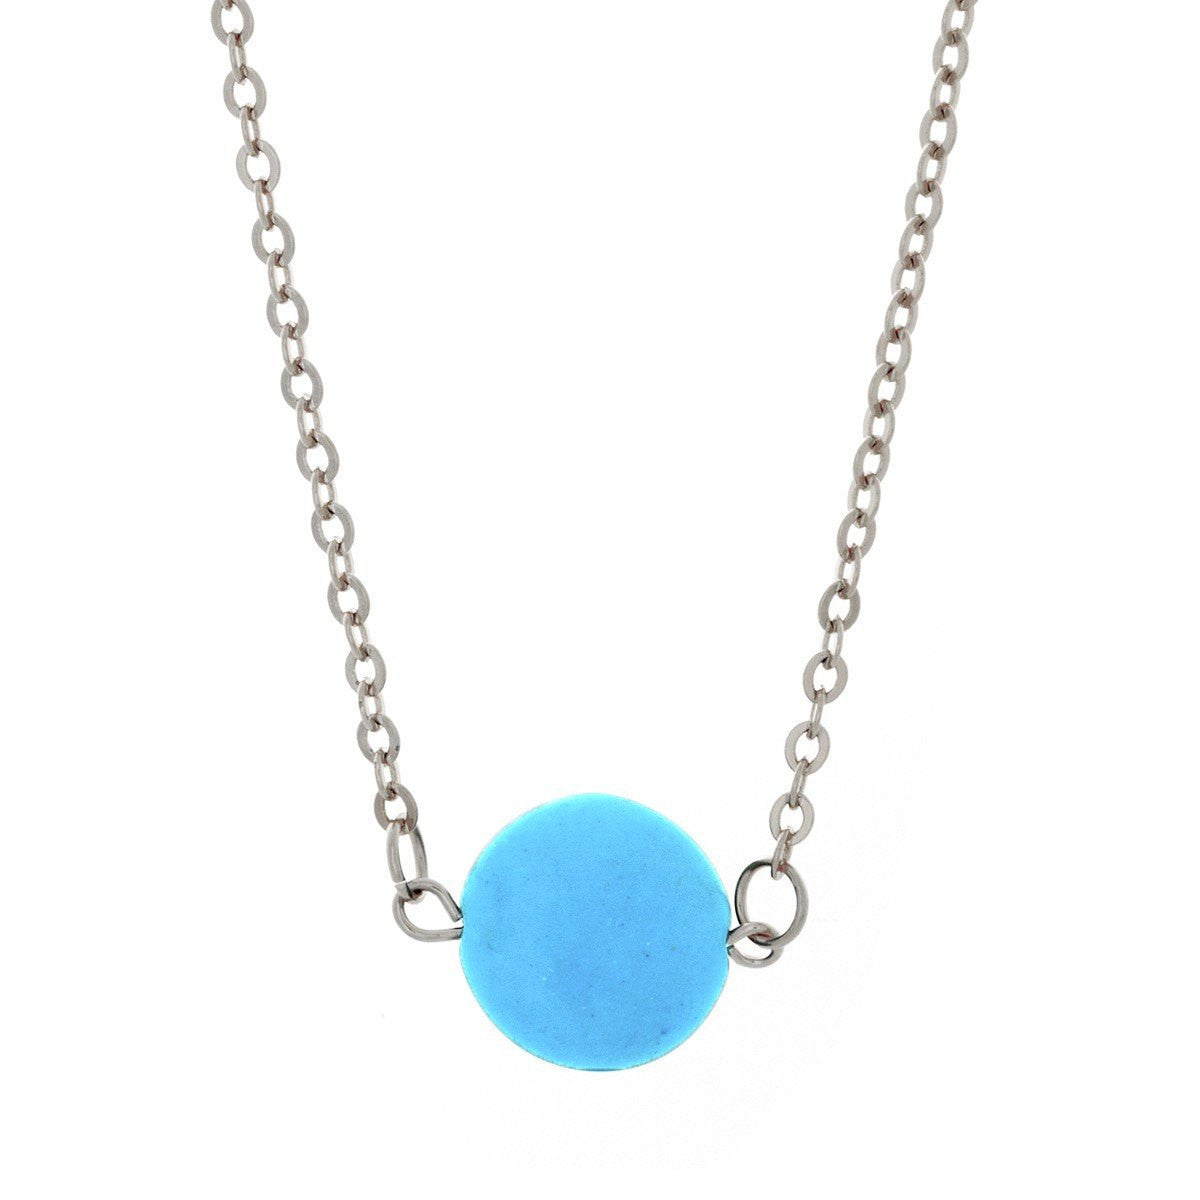 kiani amaleia products turquoise necklace